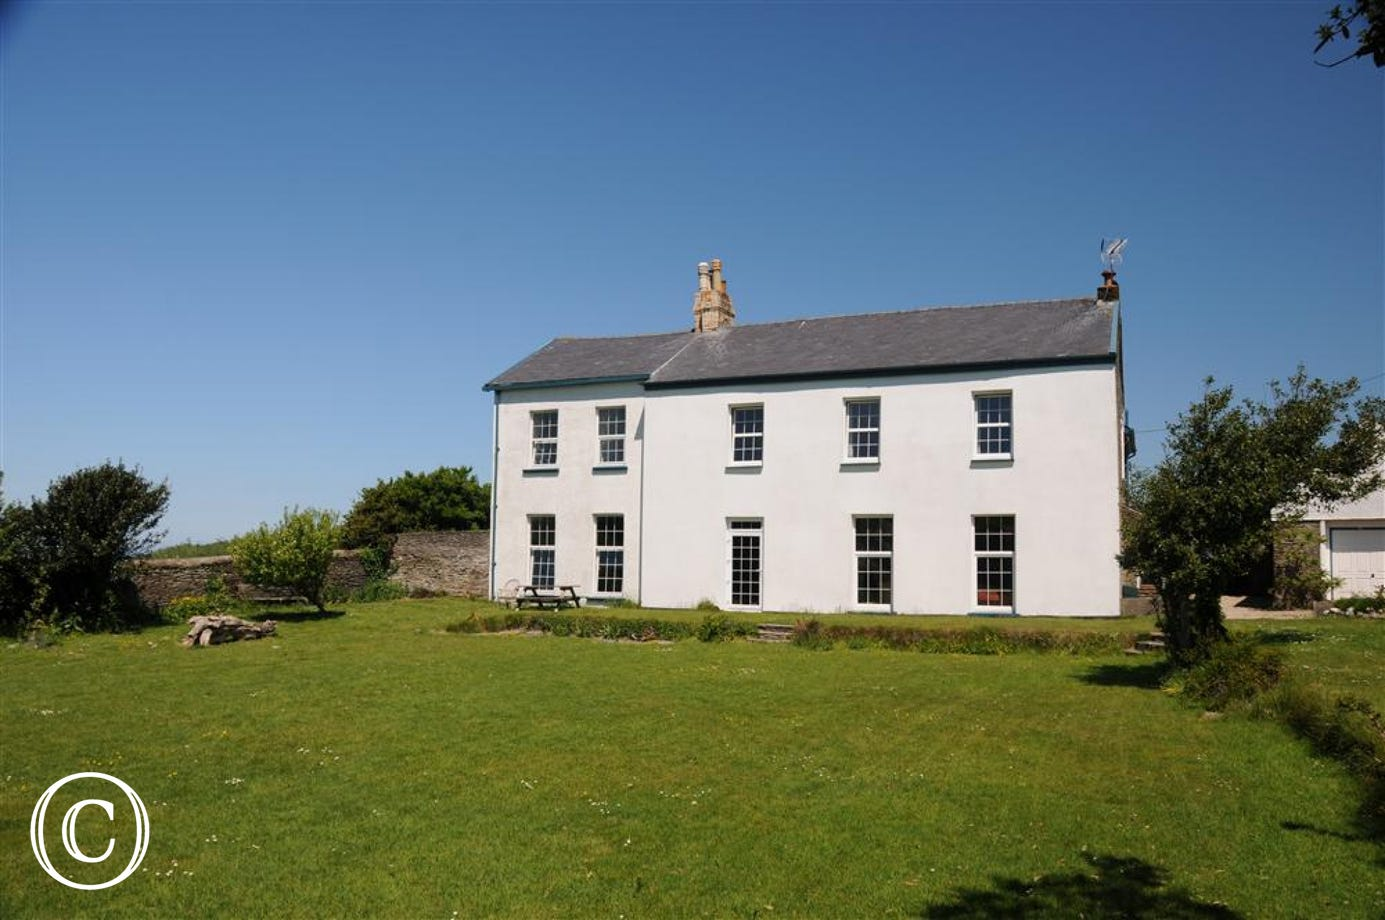 Mailscot is situated in the pretty village of Mortehoe